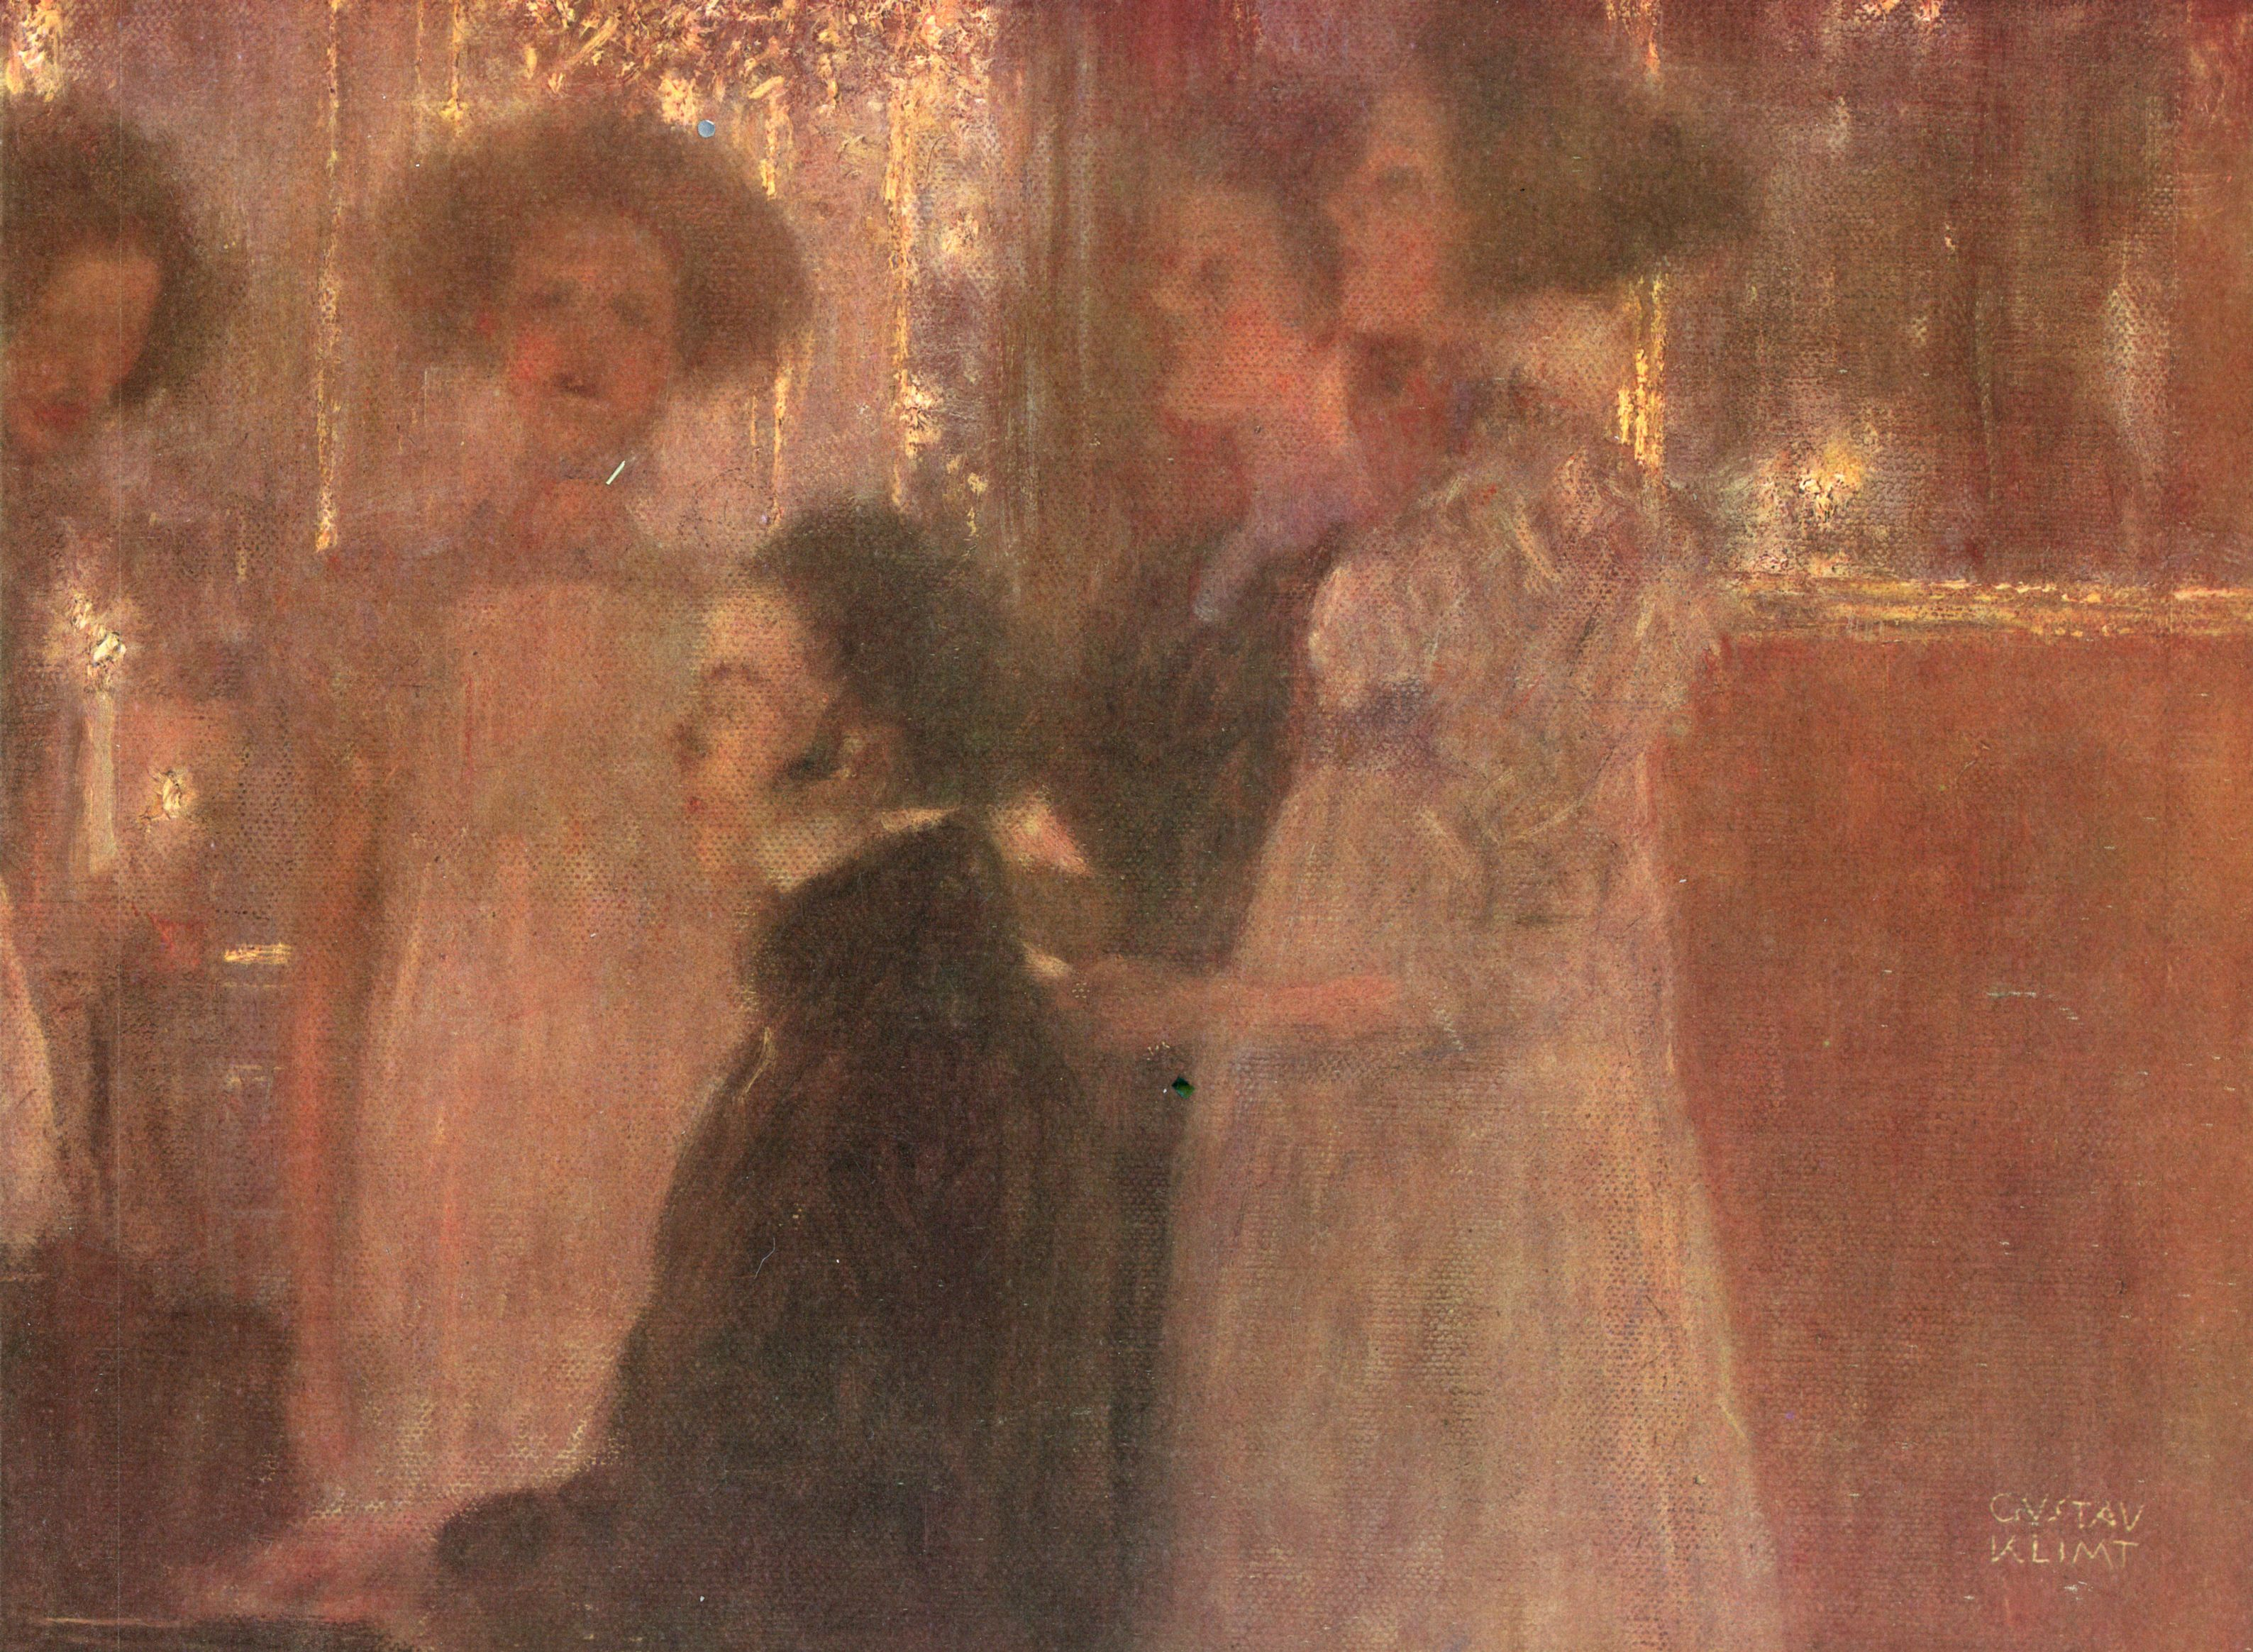 Schubert at the piano I, 1896